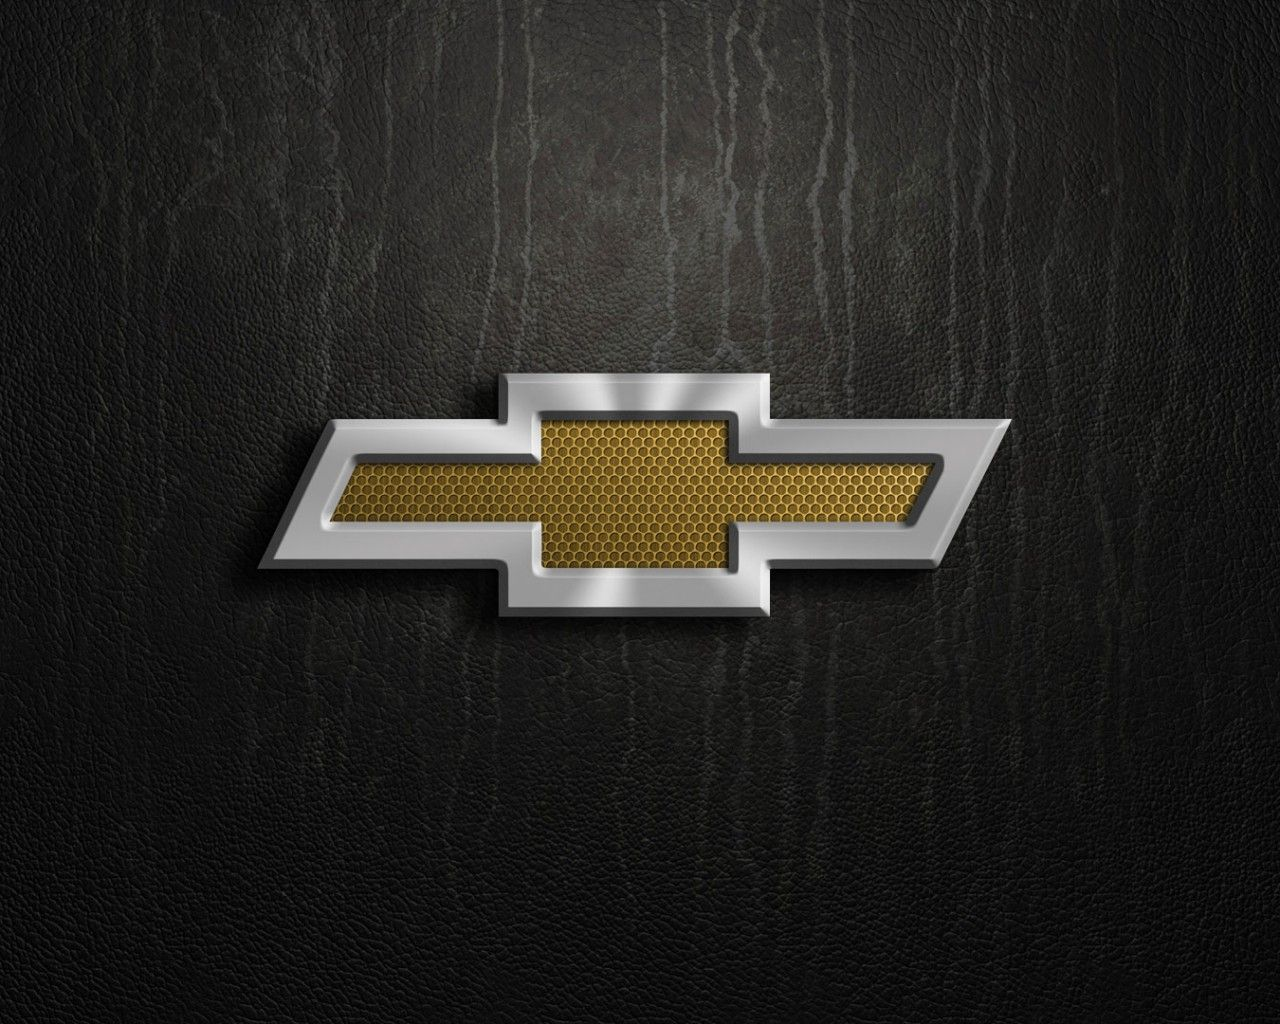 chevy logo wallpaper - Google Search | Chevrolet & GMC ...